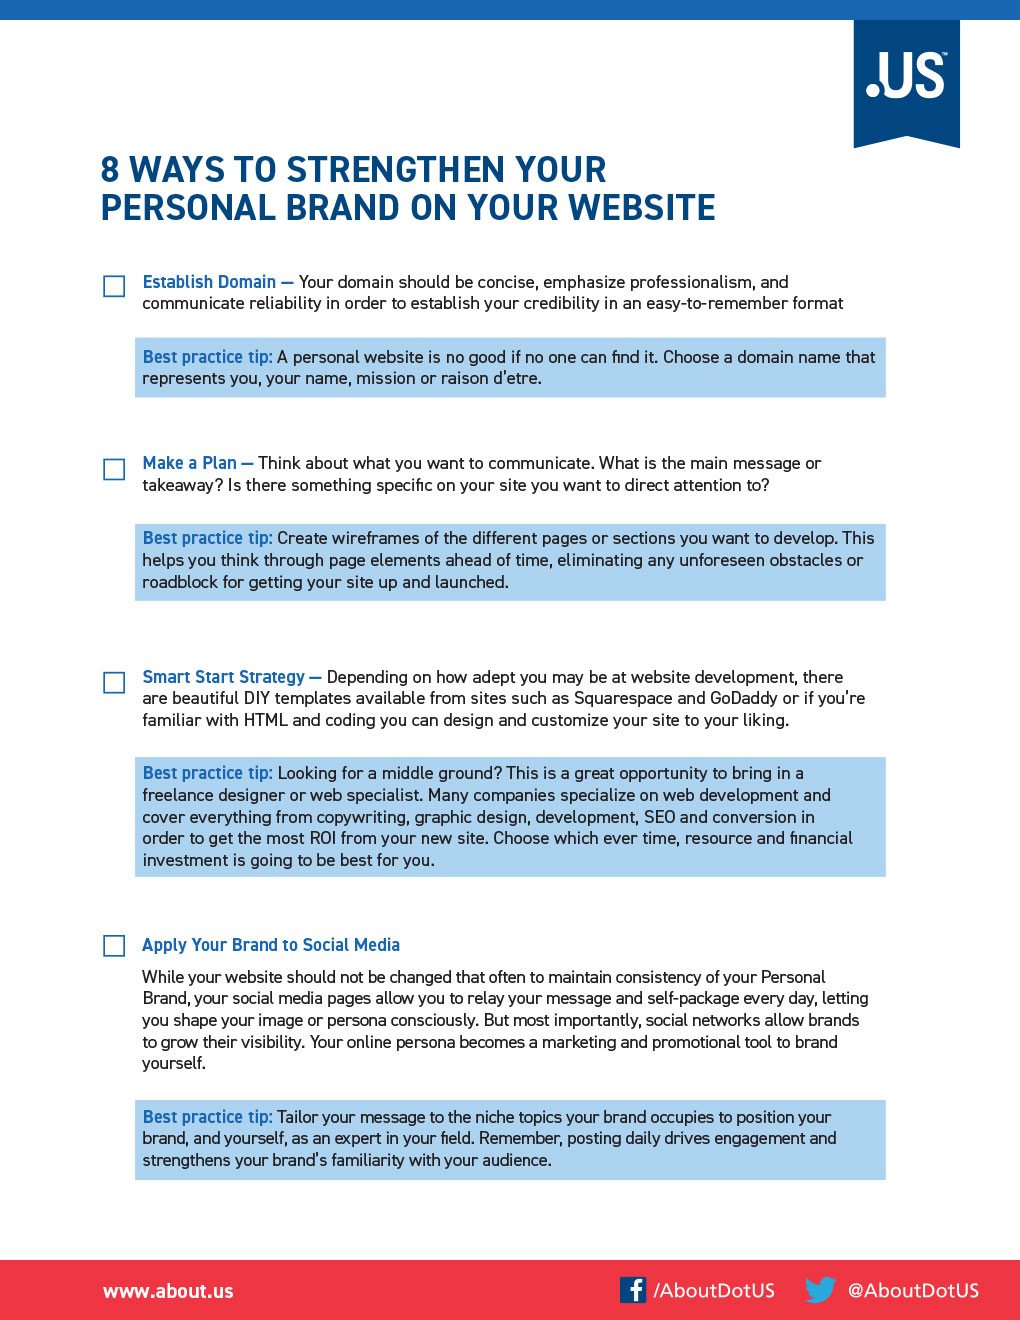 Strengthen Your Personal Brand